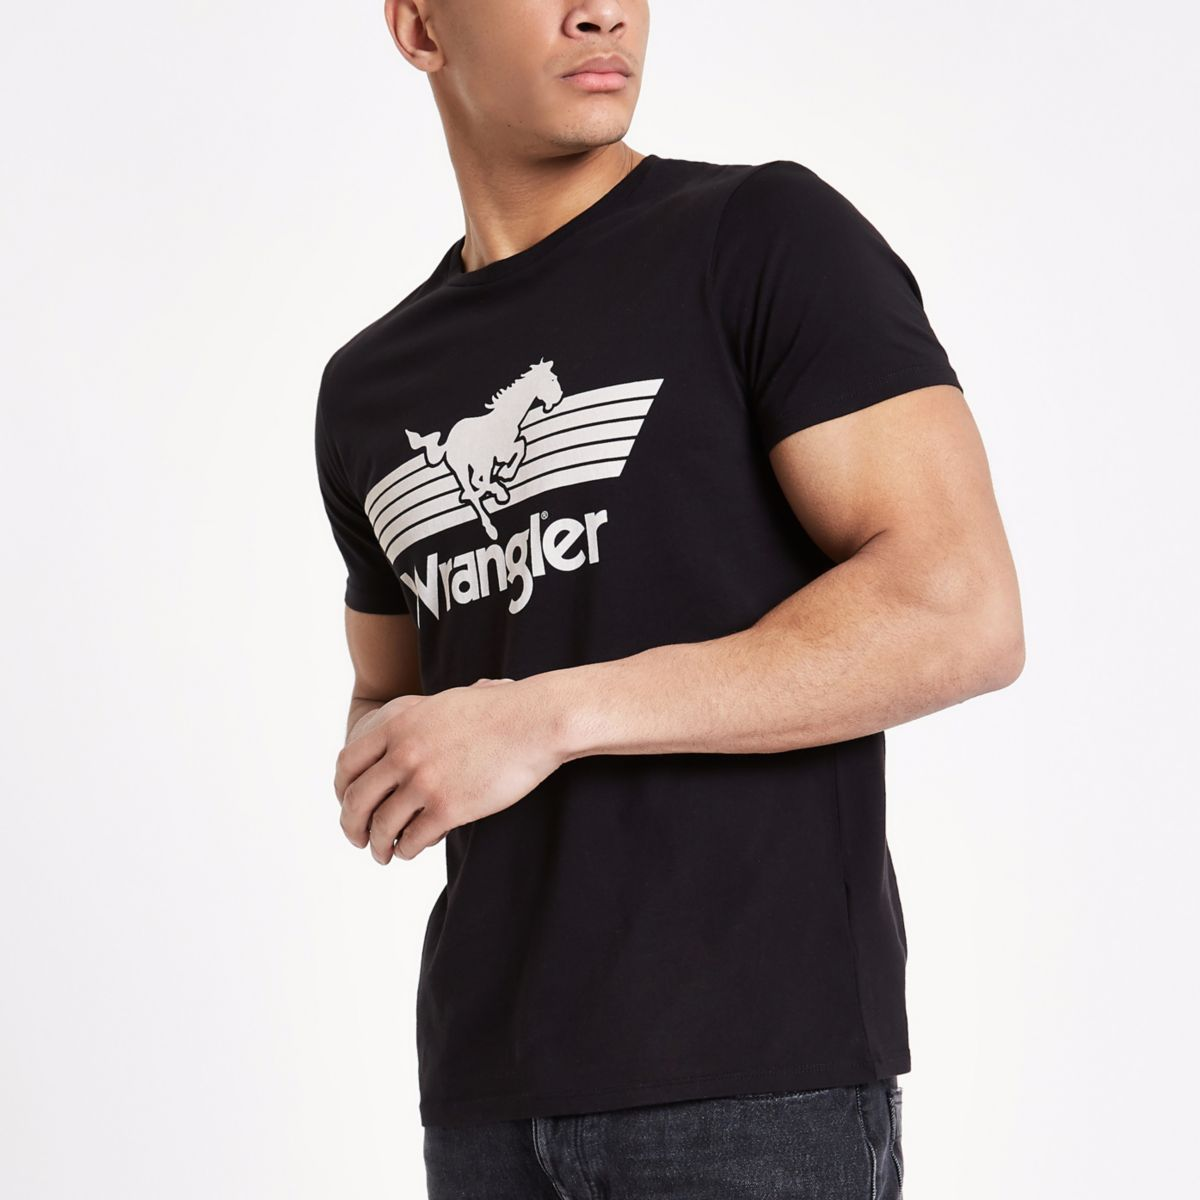 Wrangler black graphic logo print T-shirt